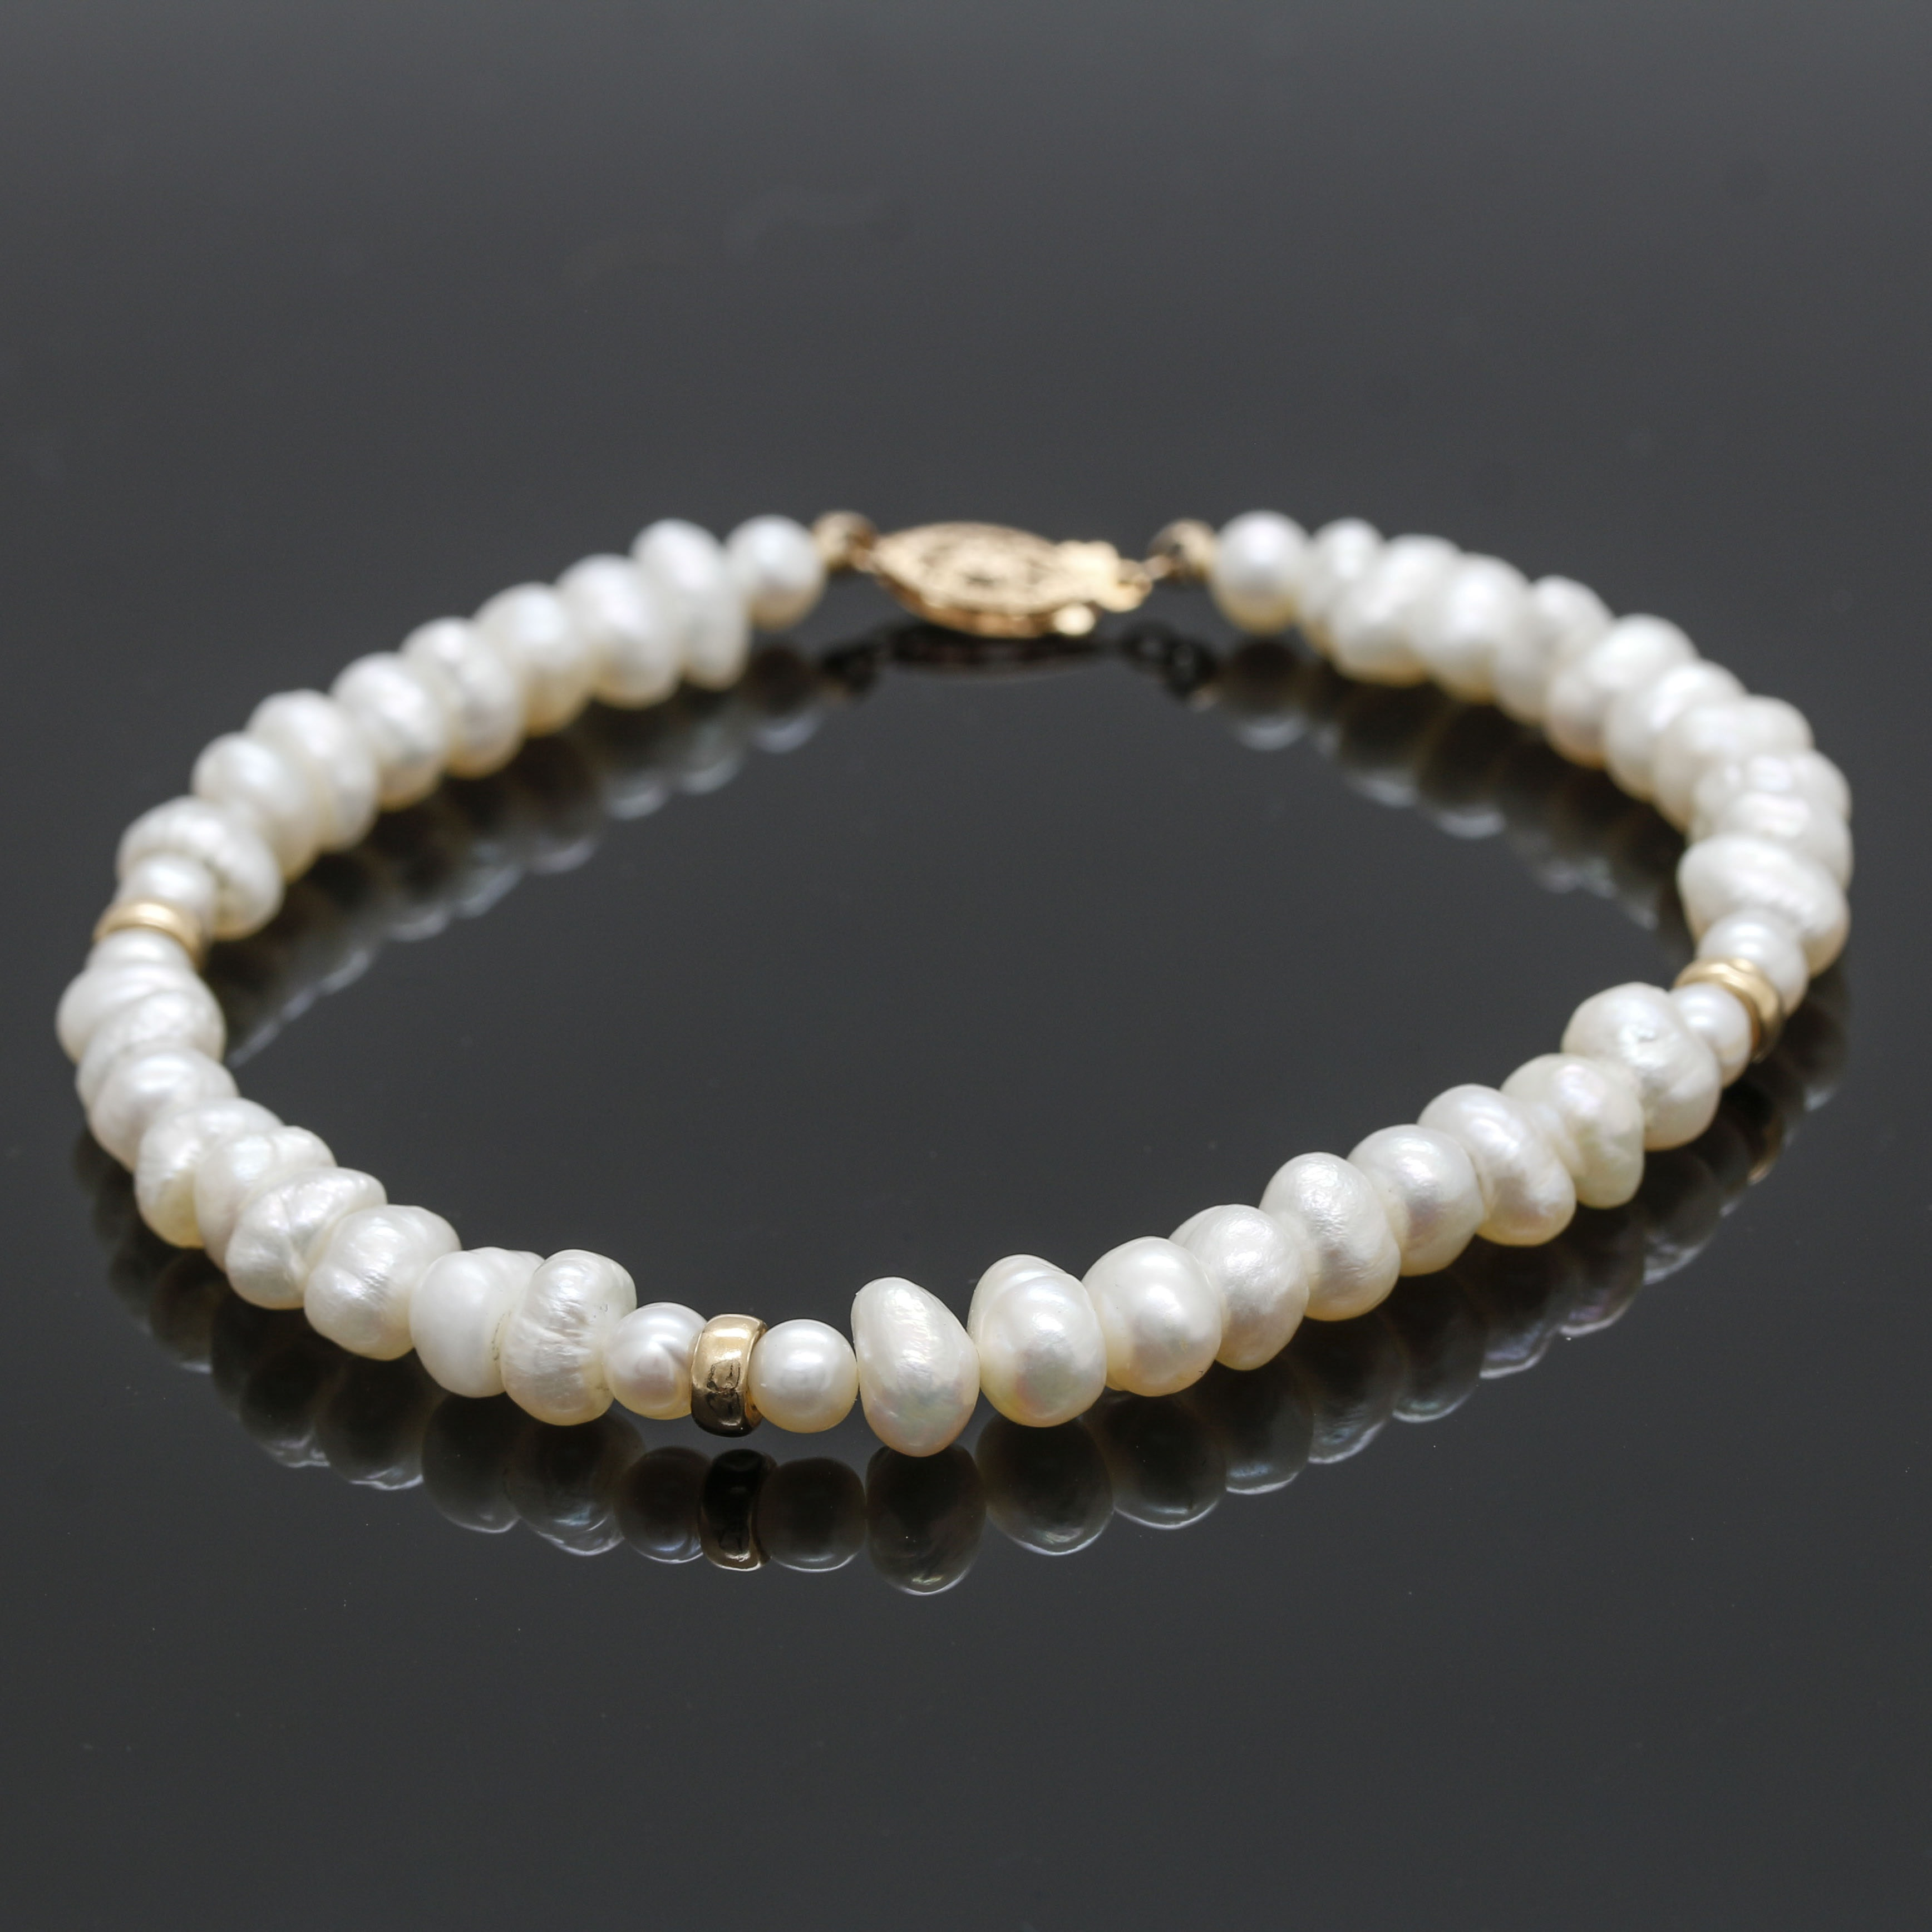 Cultured Pearl Bracelet With 14K Yellow Gold Accents